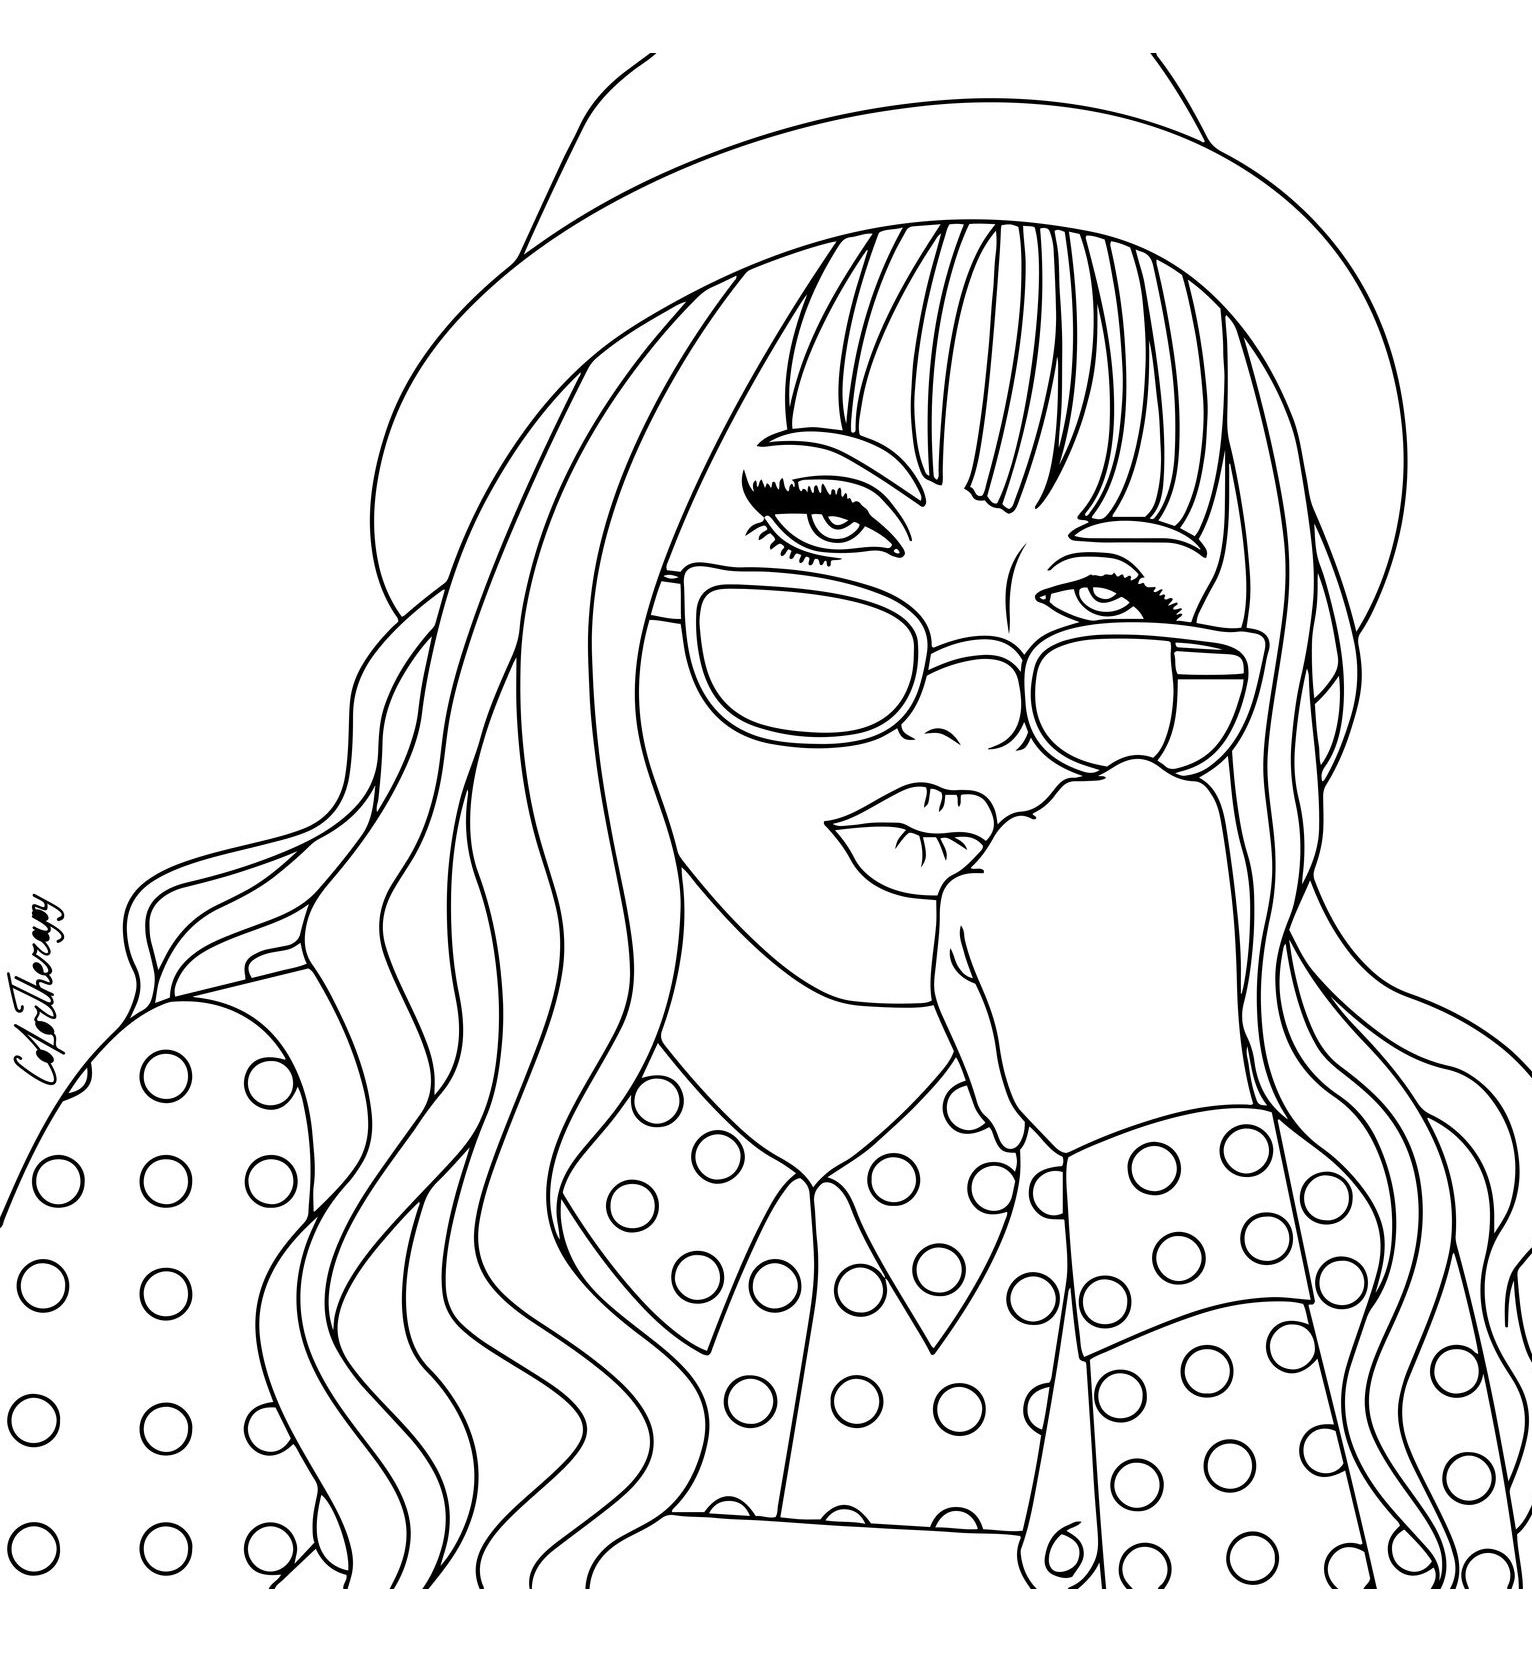 coloring pages of girls realistic teenage girl drawing at getdrawings free download pages of coloring realistic girls